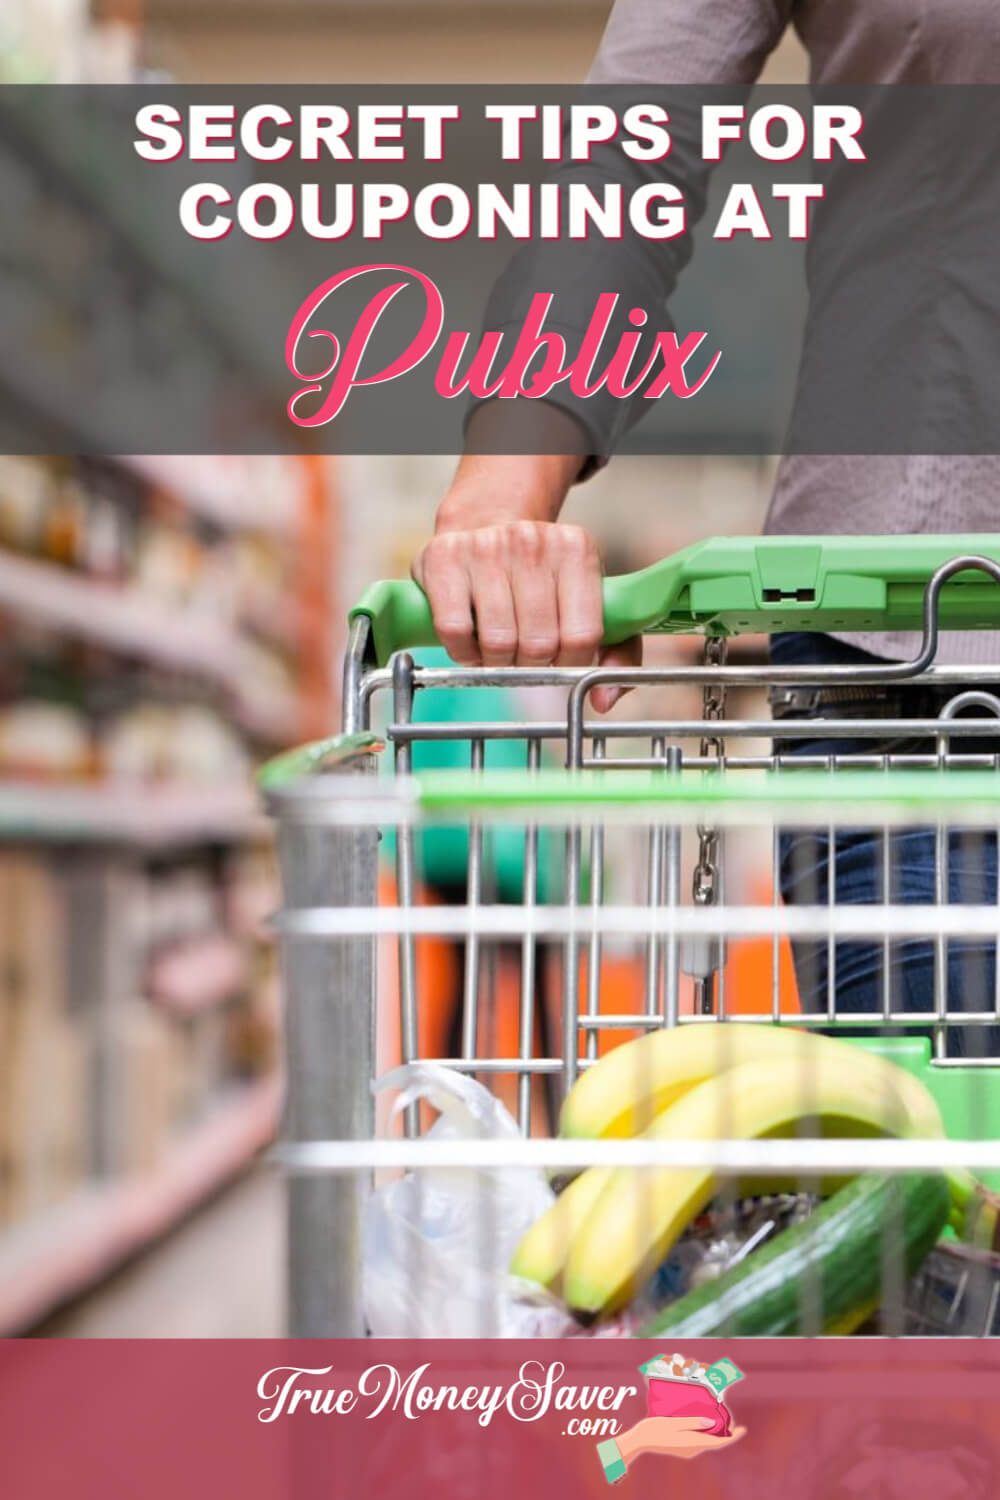 Check out these Publix saving tips to save more at Publix this year! These Publix coupon tips will get you couponing at Publix and saving more on your grocery budget! Check out the details here! 